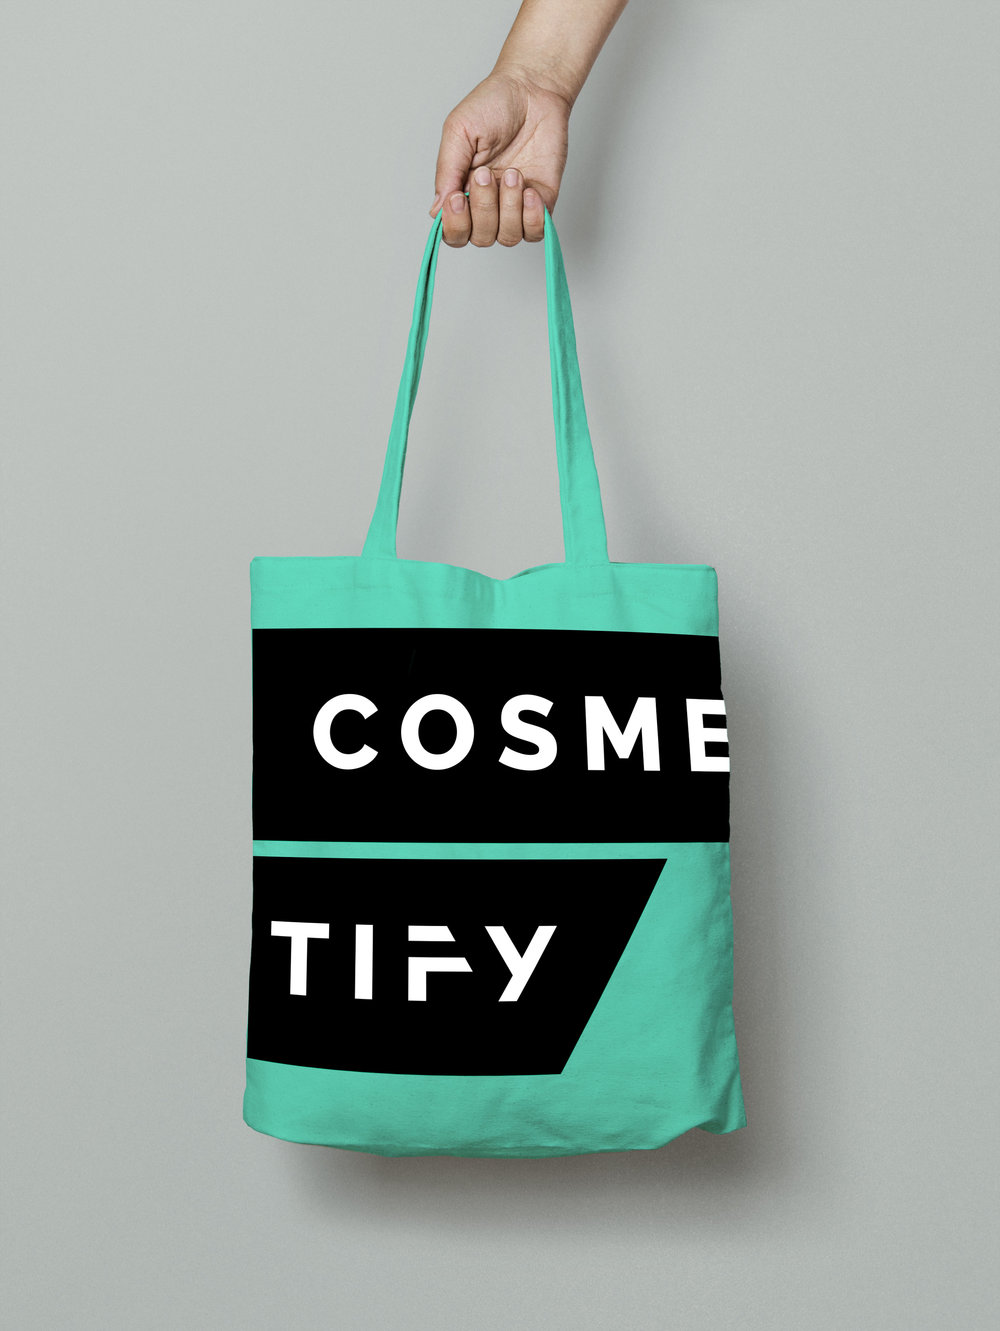 Cosmetify-Canvas-Tote-Bag-Tunbridge-Studio.jpg